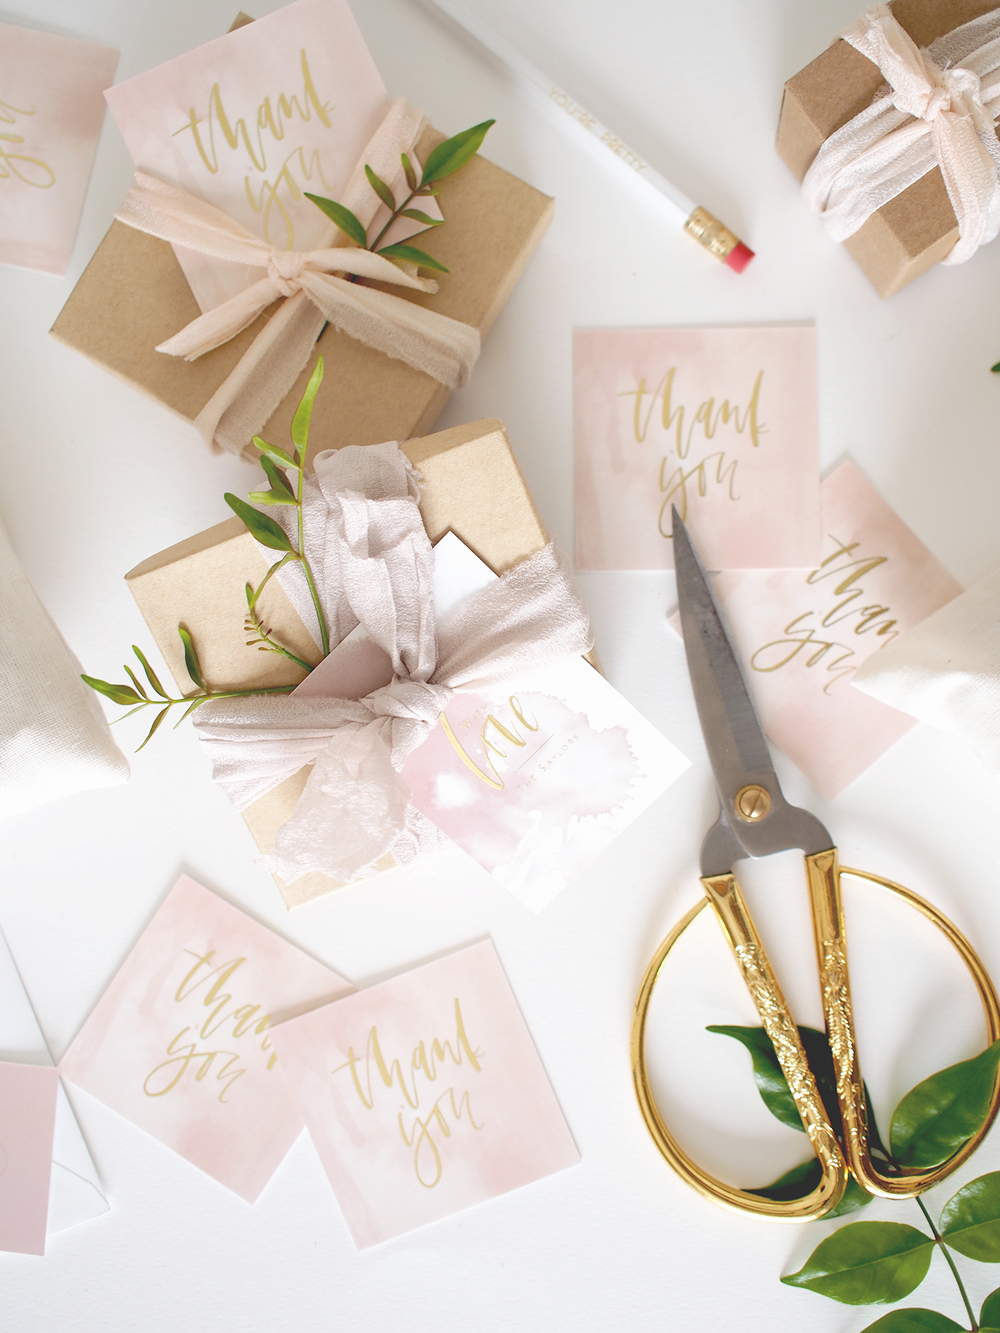 Wedding favor wrapping and tag ideas | A Fabulous Fete